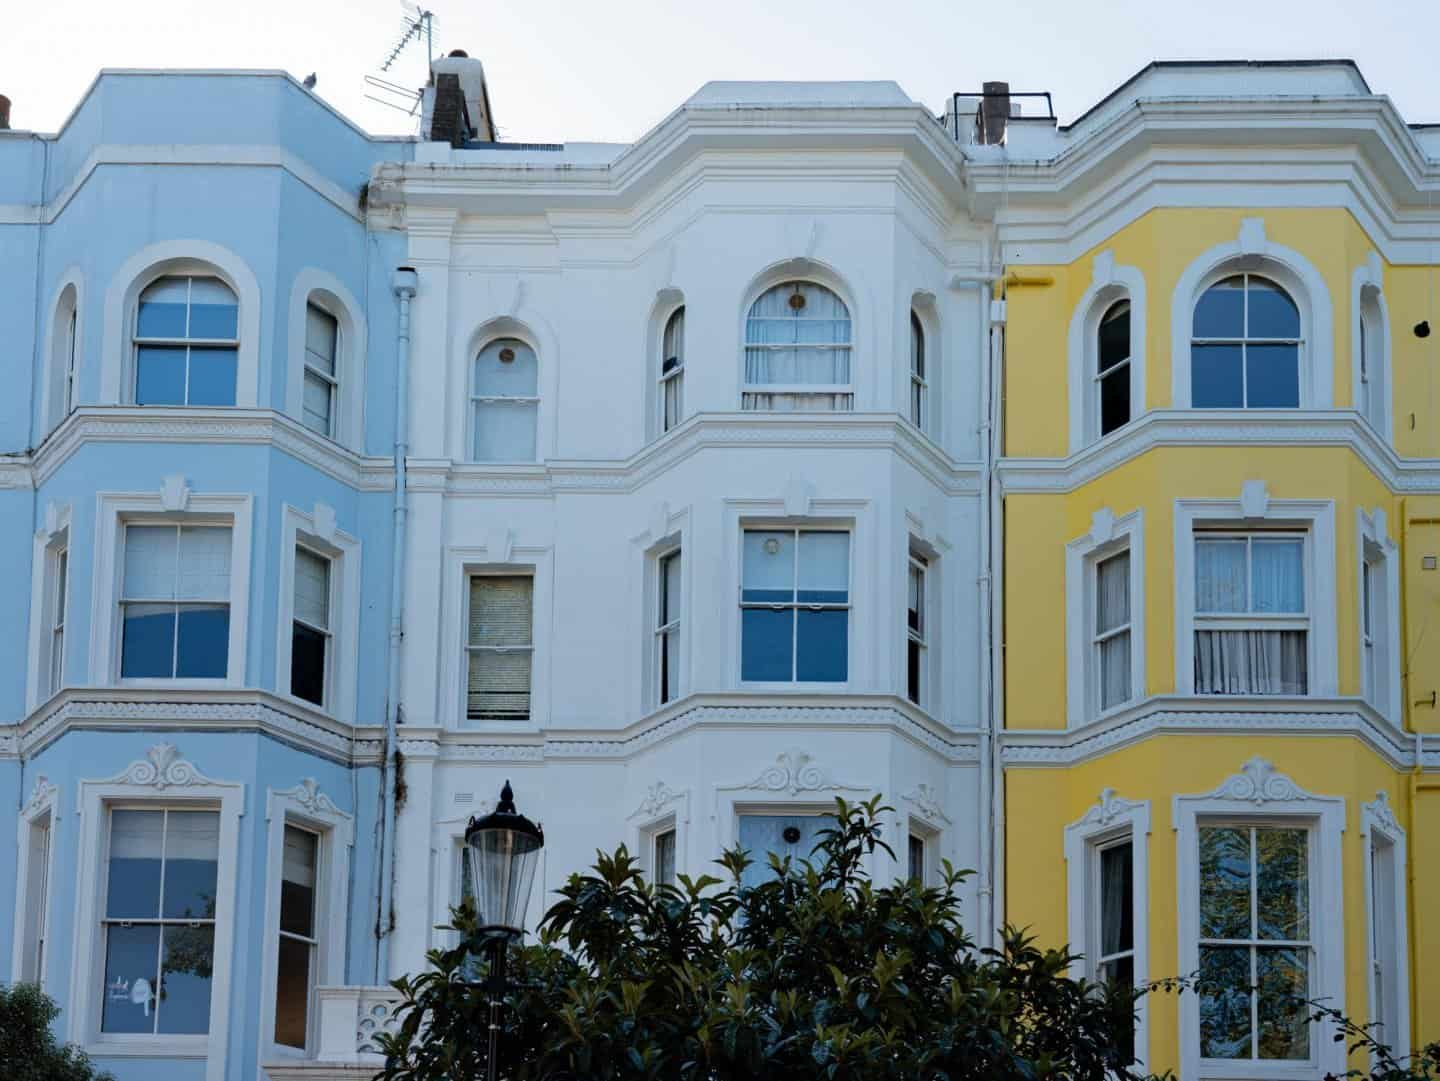 Colvile Terrace colorful houses Notting Hill London